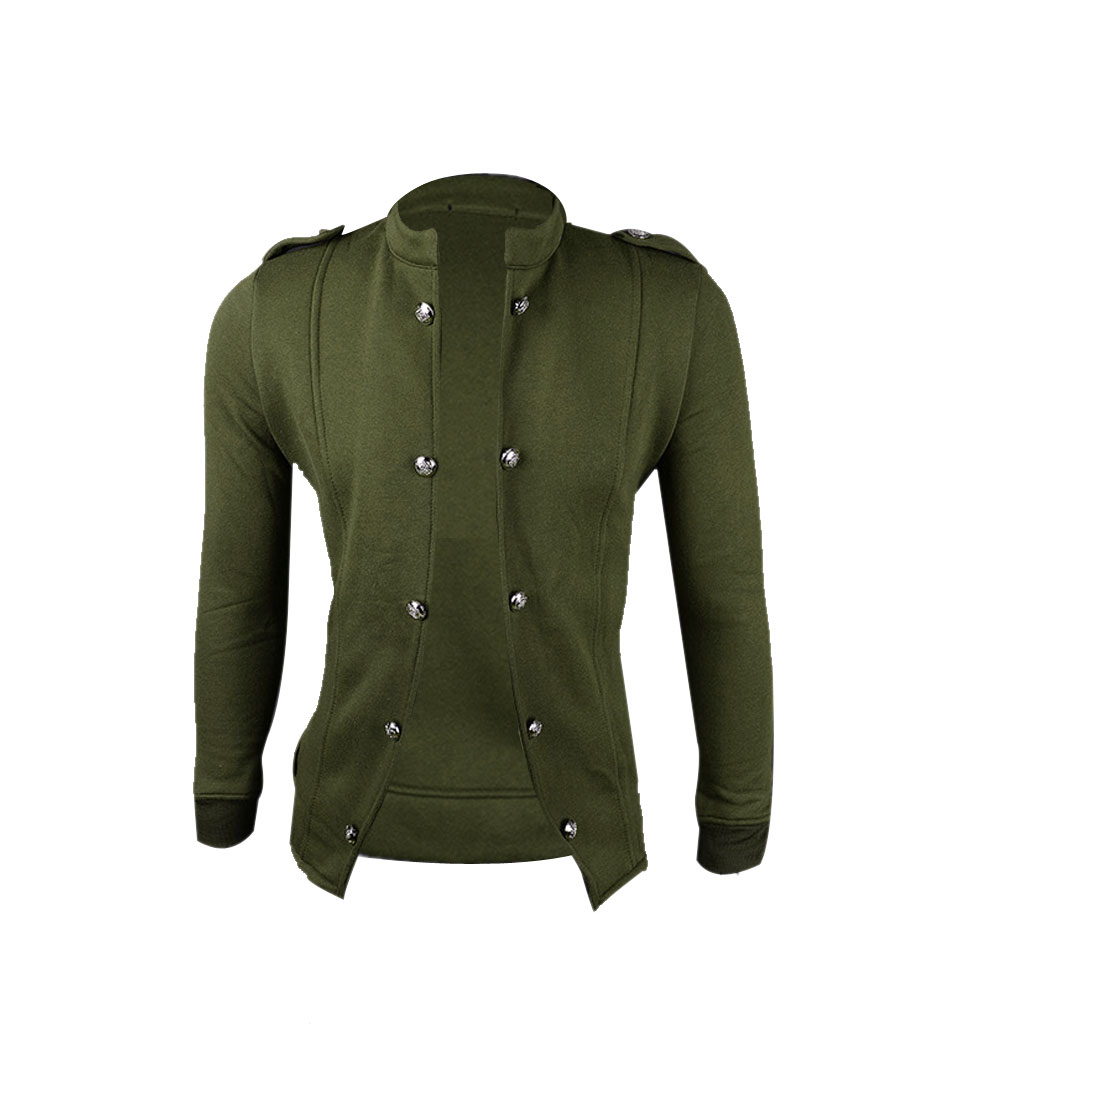 Men M Olive Green Long Sleeve Stand Collar Solid Color Slim Fit Jacket